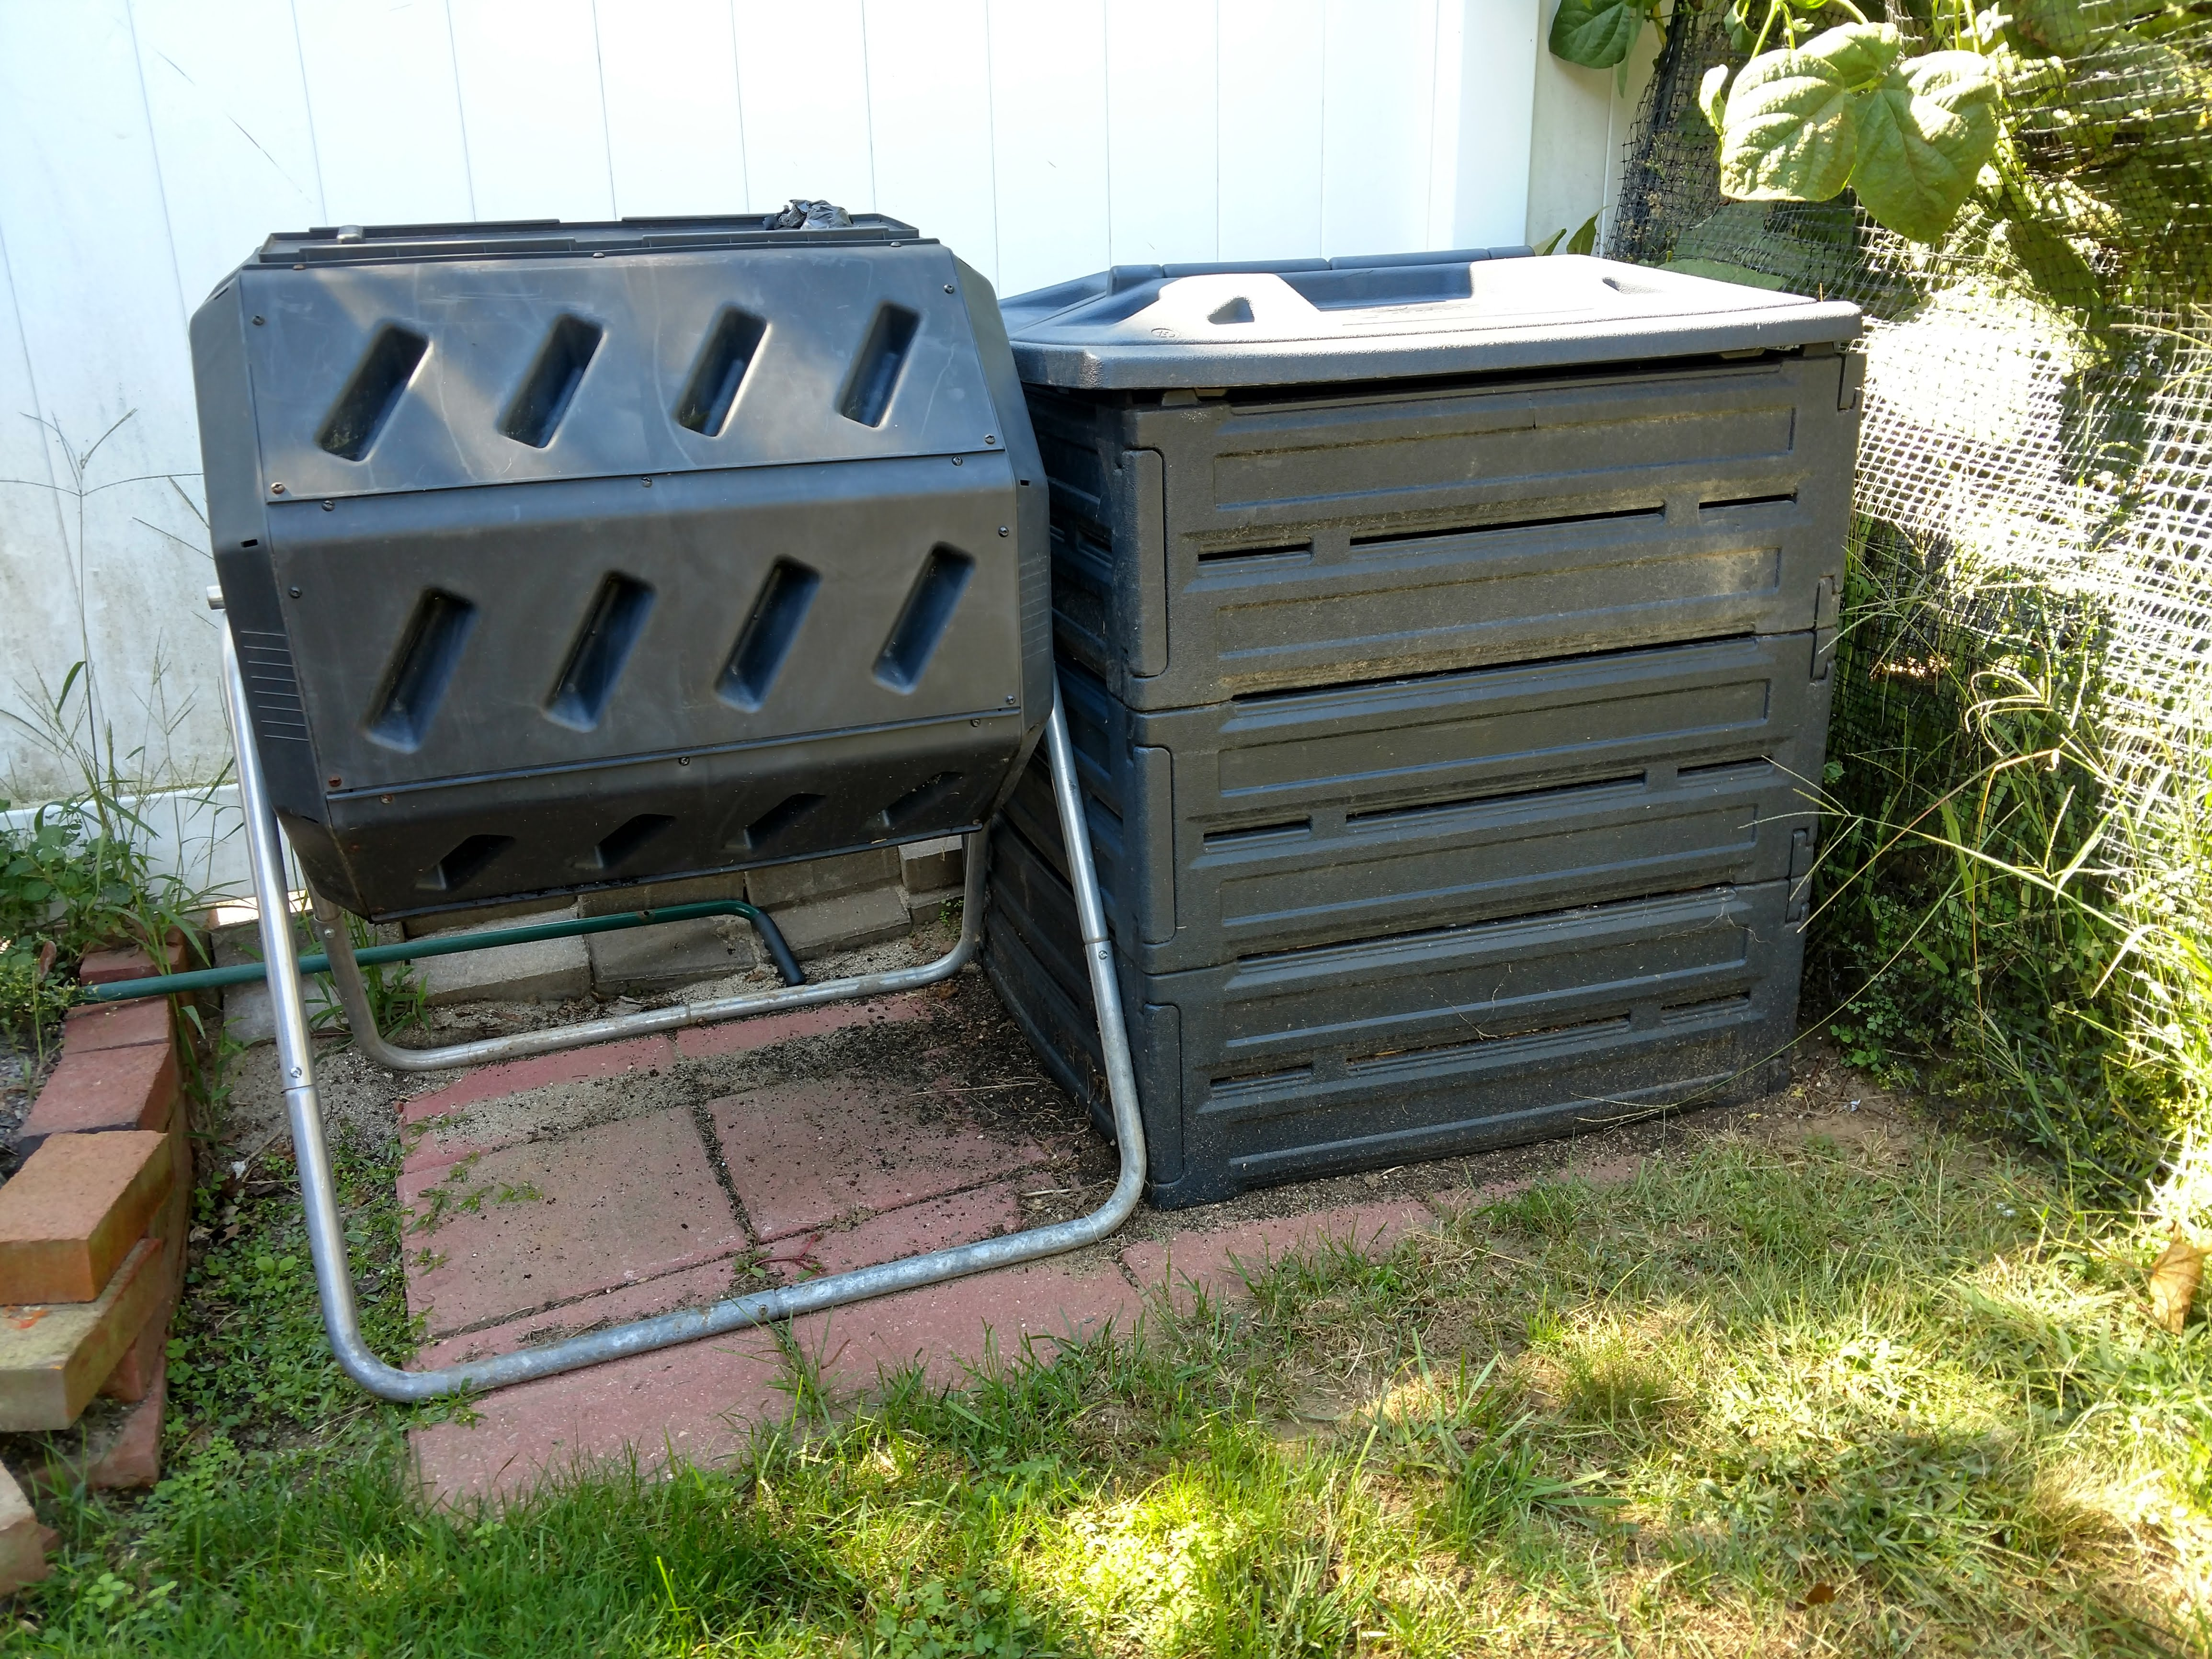 Our bins, side by side